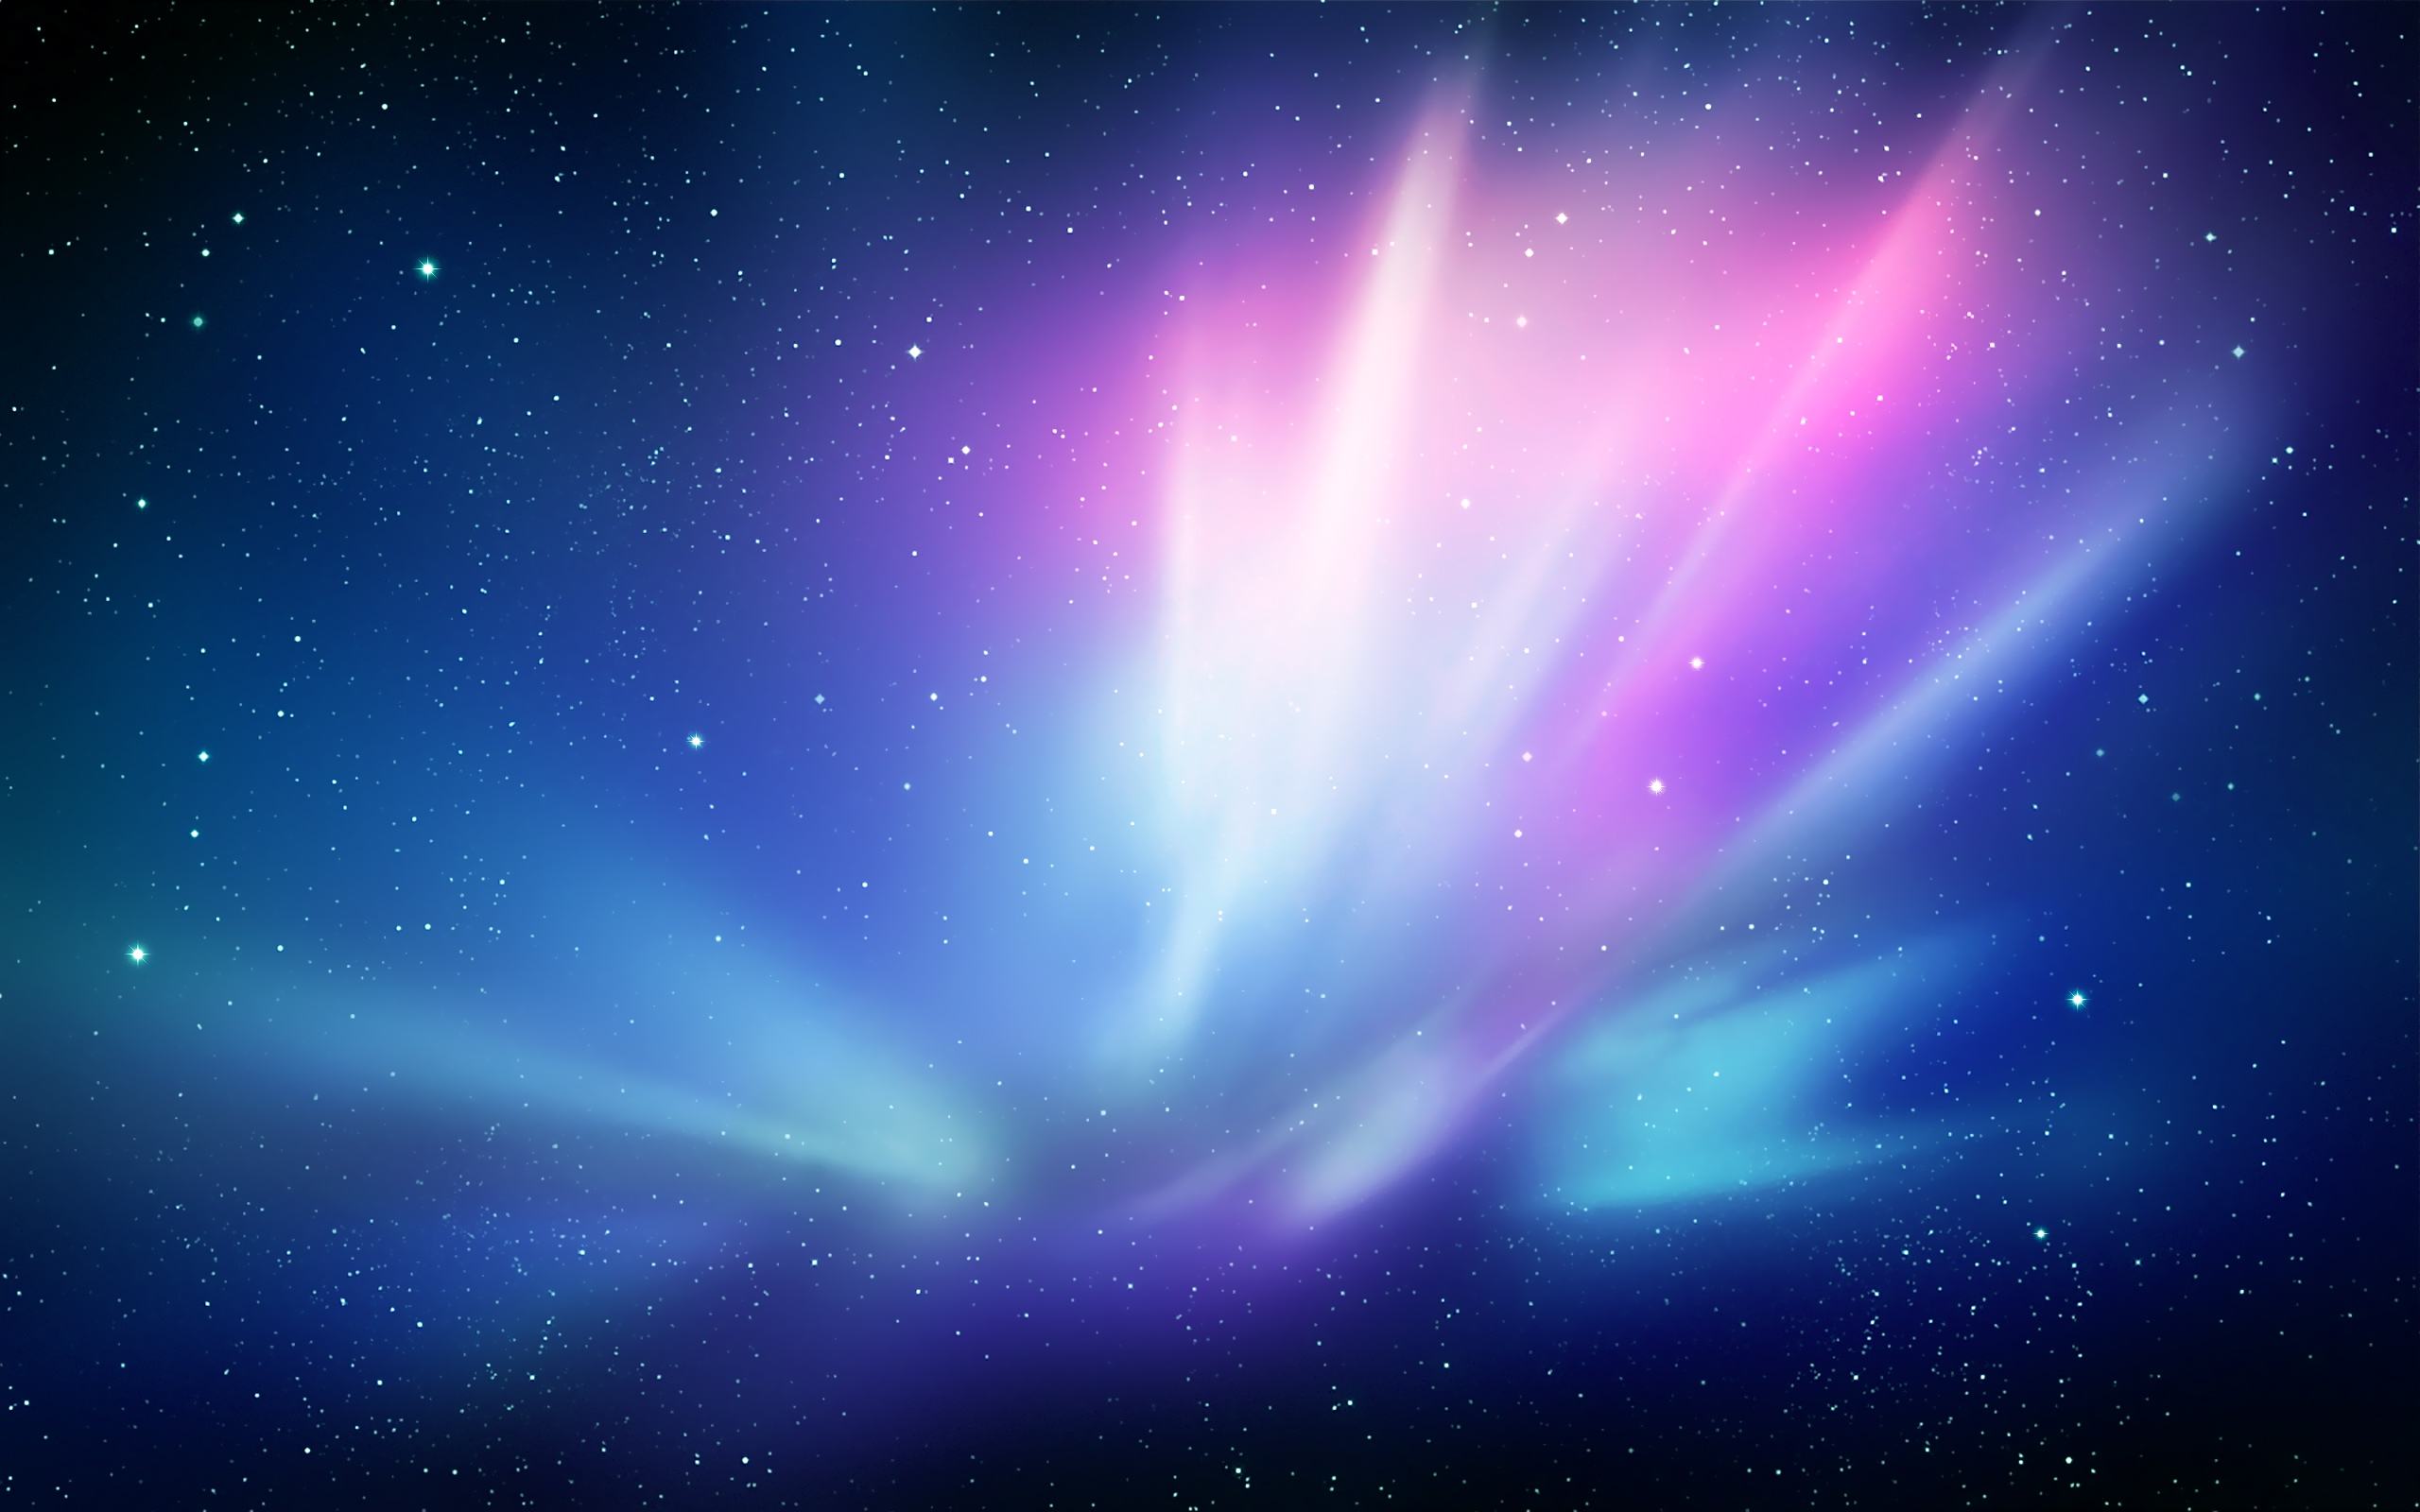 Apple Inc Wallpaper - Pink Galaxy Wallpaper Hd , HD Wallpaper & Backgrounds